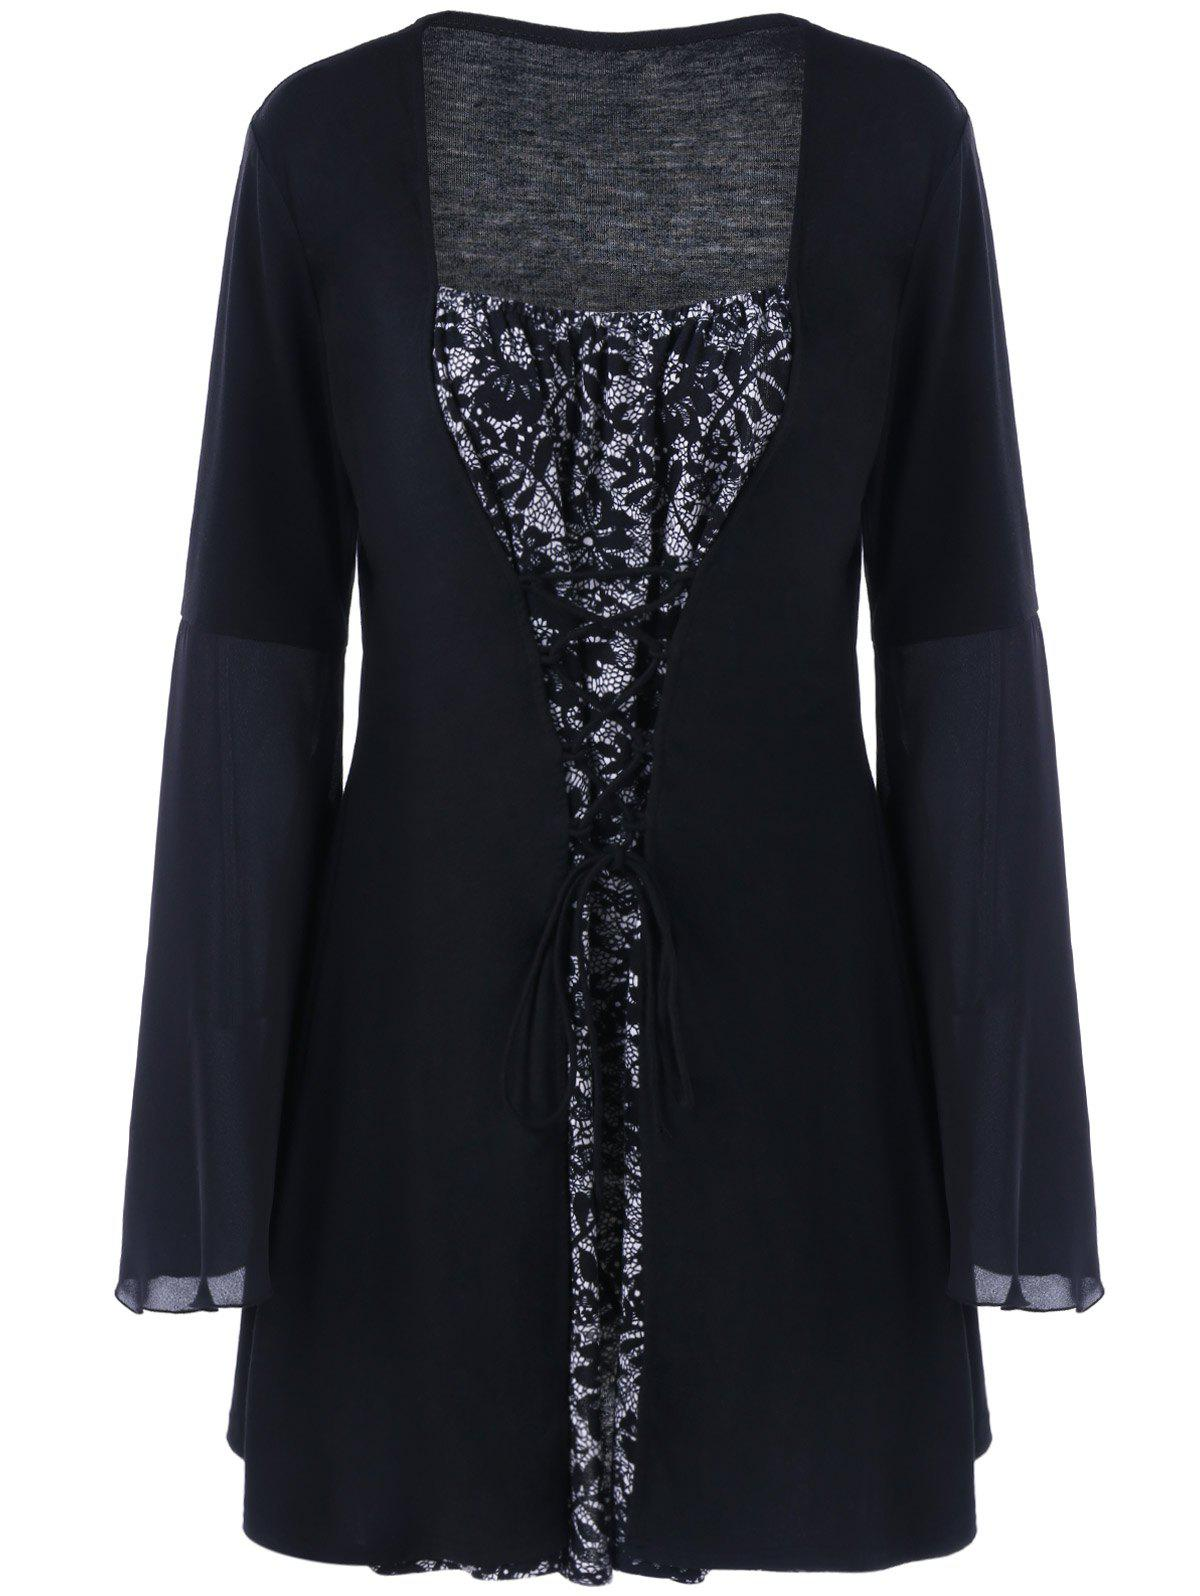 2018 Plus Size Flare Sleeve Lace Up Gothic Dress Black Xl In Dresses